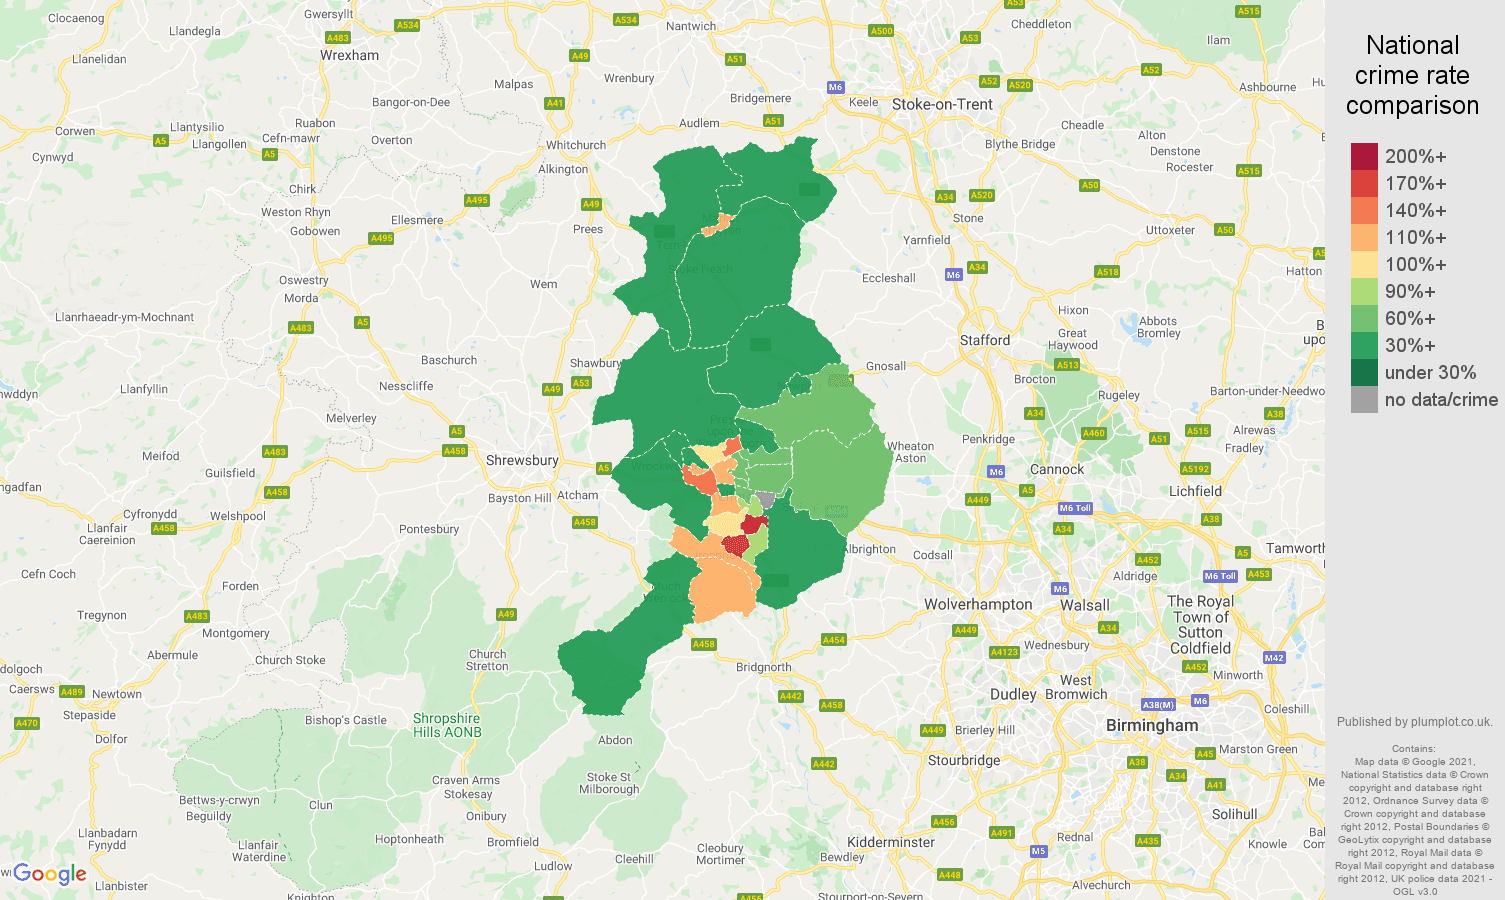 Telford criminal damage and arson crime rate comparison map